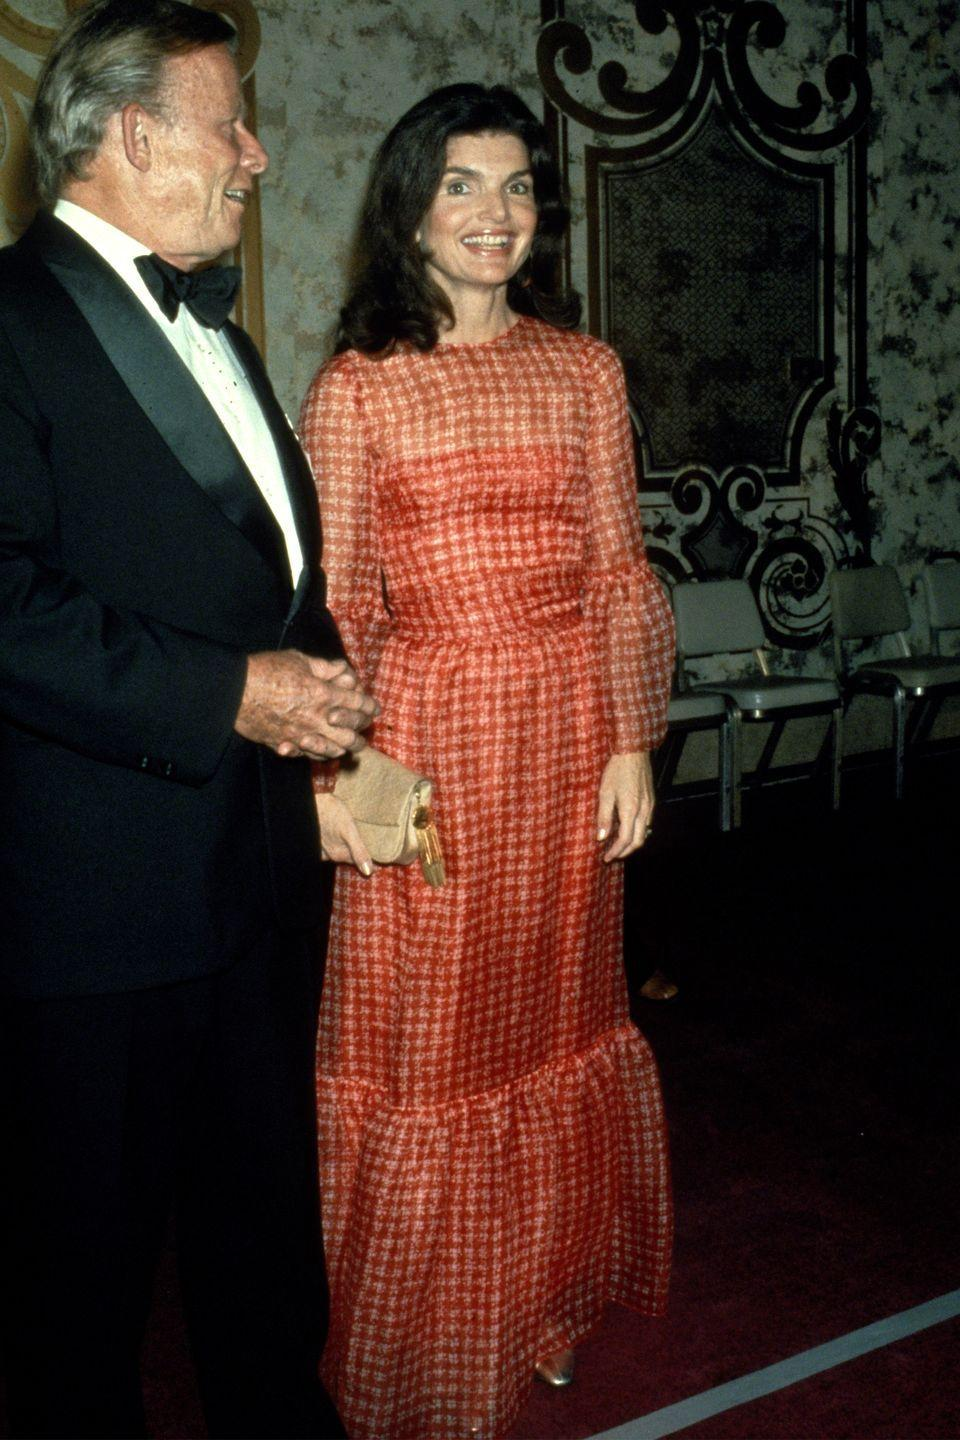 <p>Jackie sported another silk gown during a visit in Washington, DC, this one fashioned in a bright checkered print. </p>